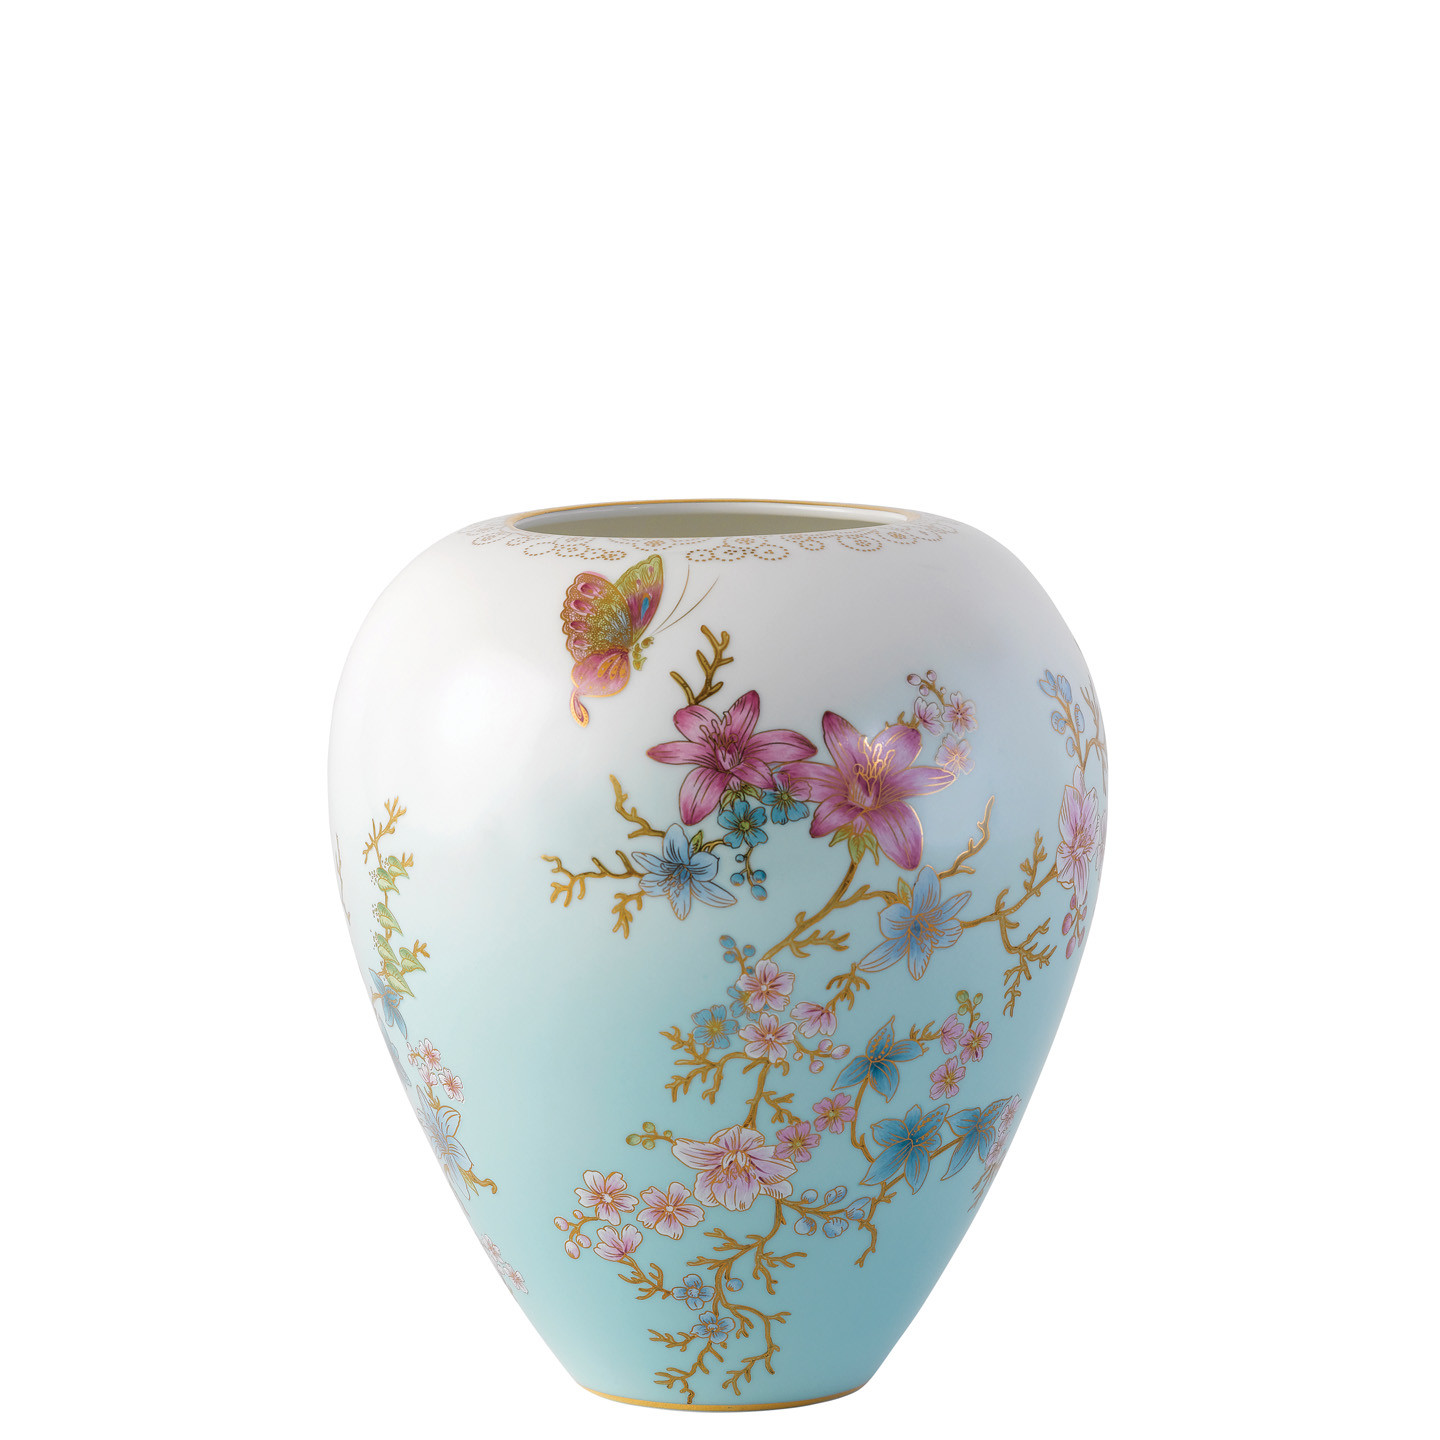 vera wang love knots vase of decorative vases home dacor accessories prestige wedgwooda uk for prestige jade butterfly small vase limited edition of 10